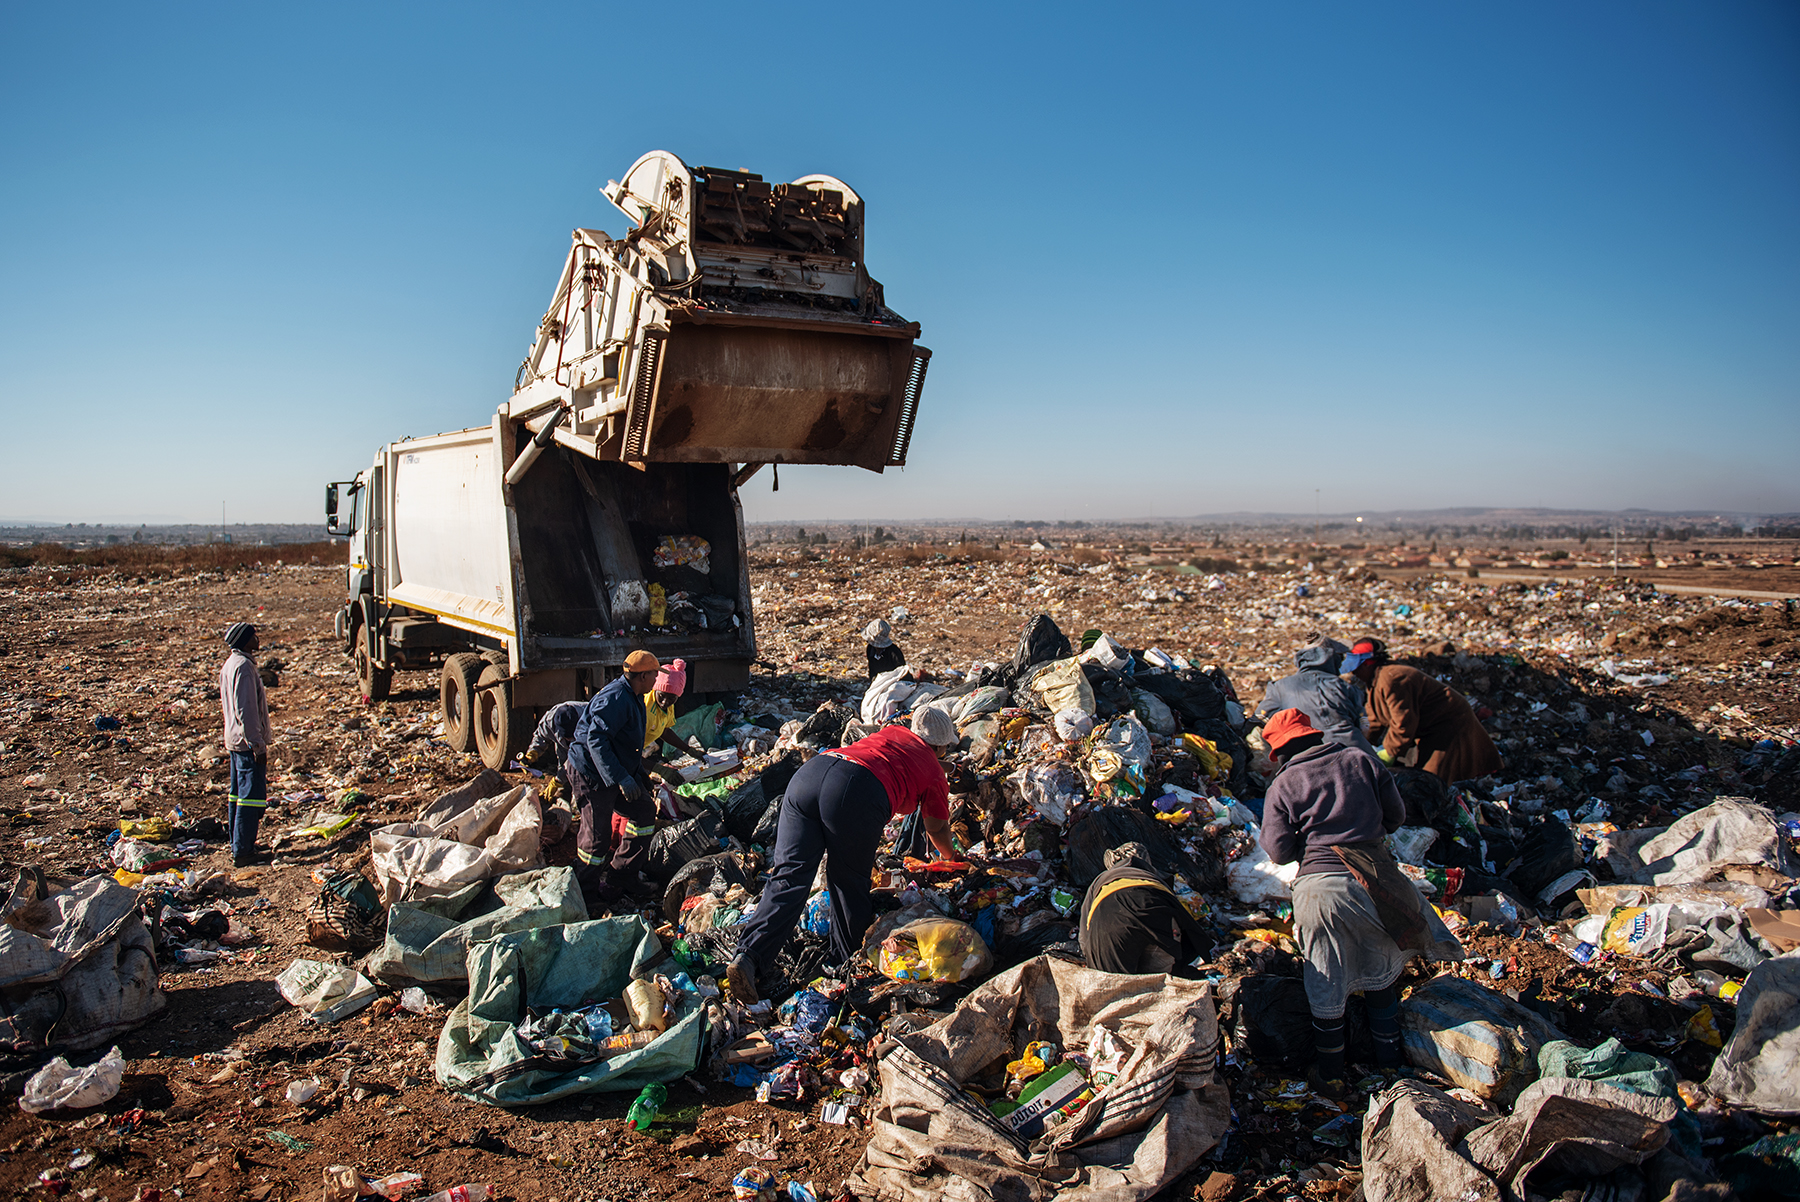 Eva Mokoena, a 33 years old South African informal waste picker, scavenges waste dumped by a garbage truck along with other women reclaimers at the Palm Springs landfill in the outskirt of Johannesburg, South Africa, on June 28, 2019.